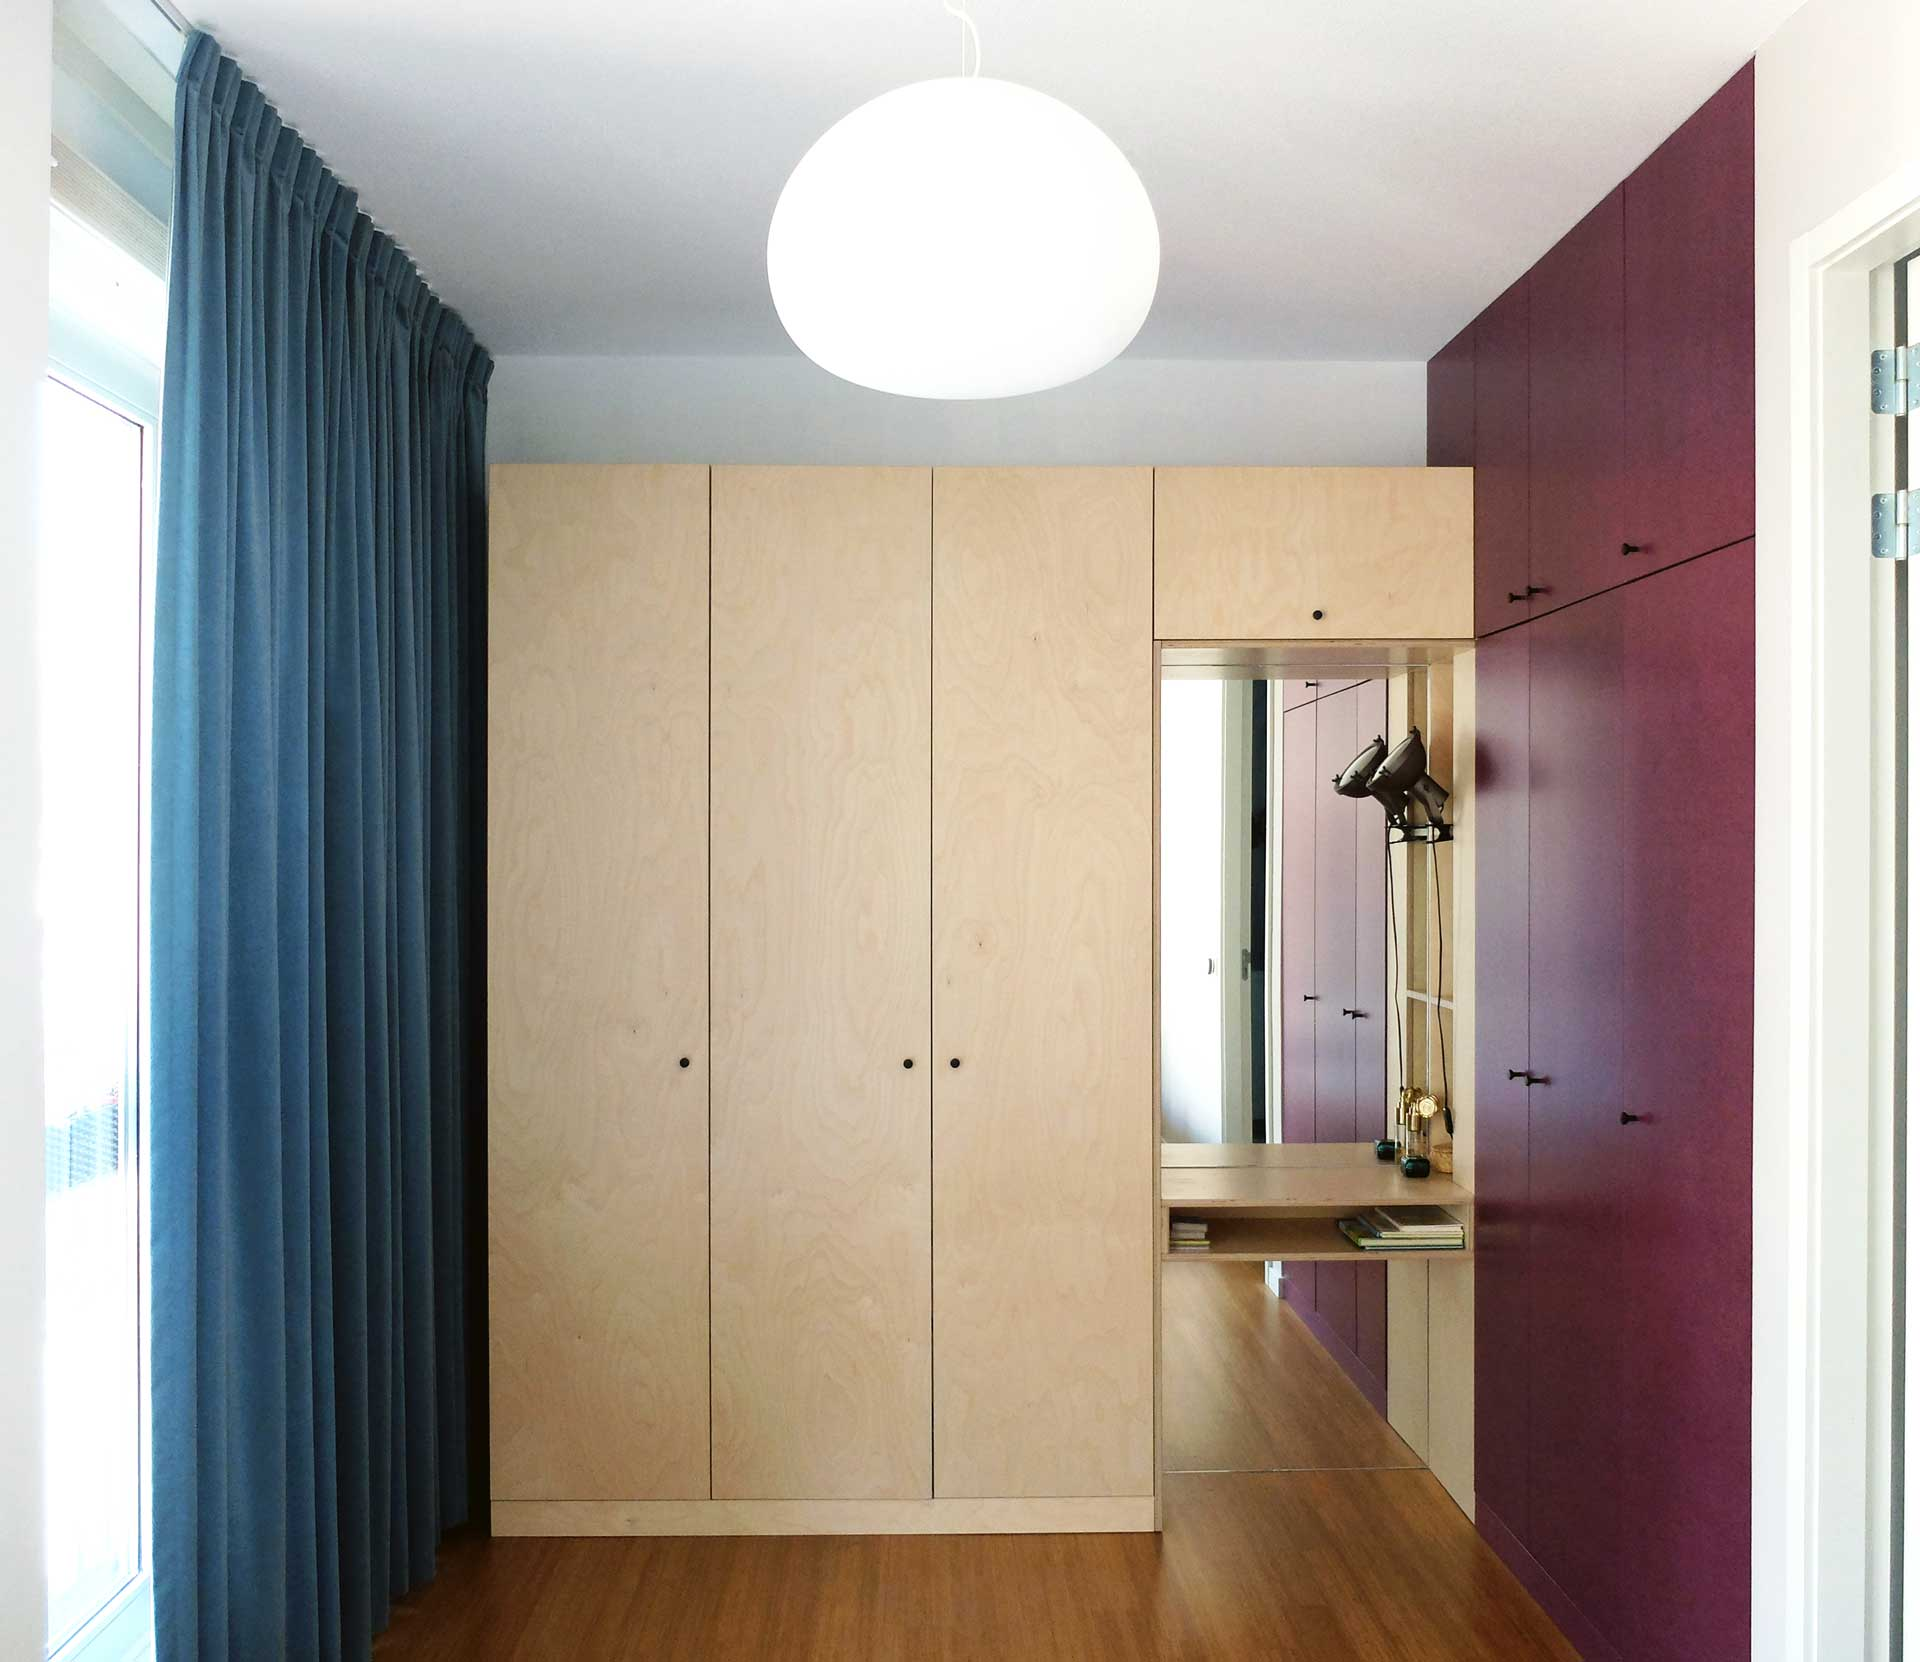 Lagado-architects-workhome-noordereiland-interior-multiplex-birch-purple-valchromat-blue-curtain